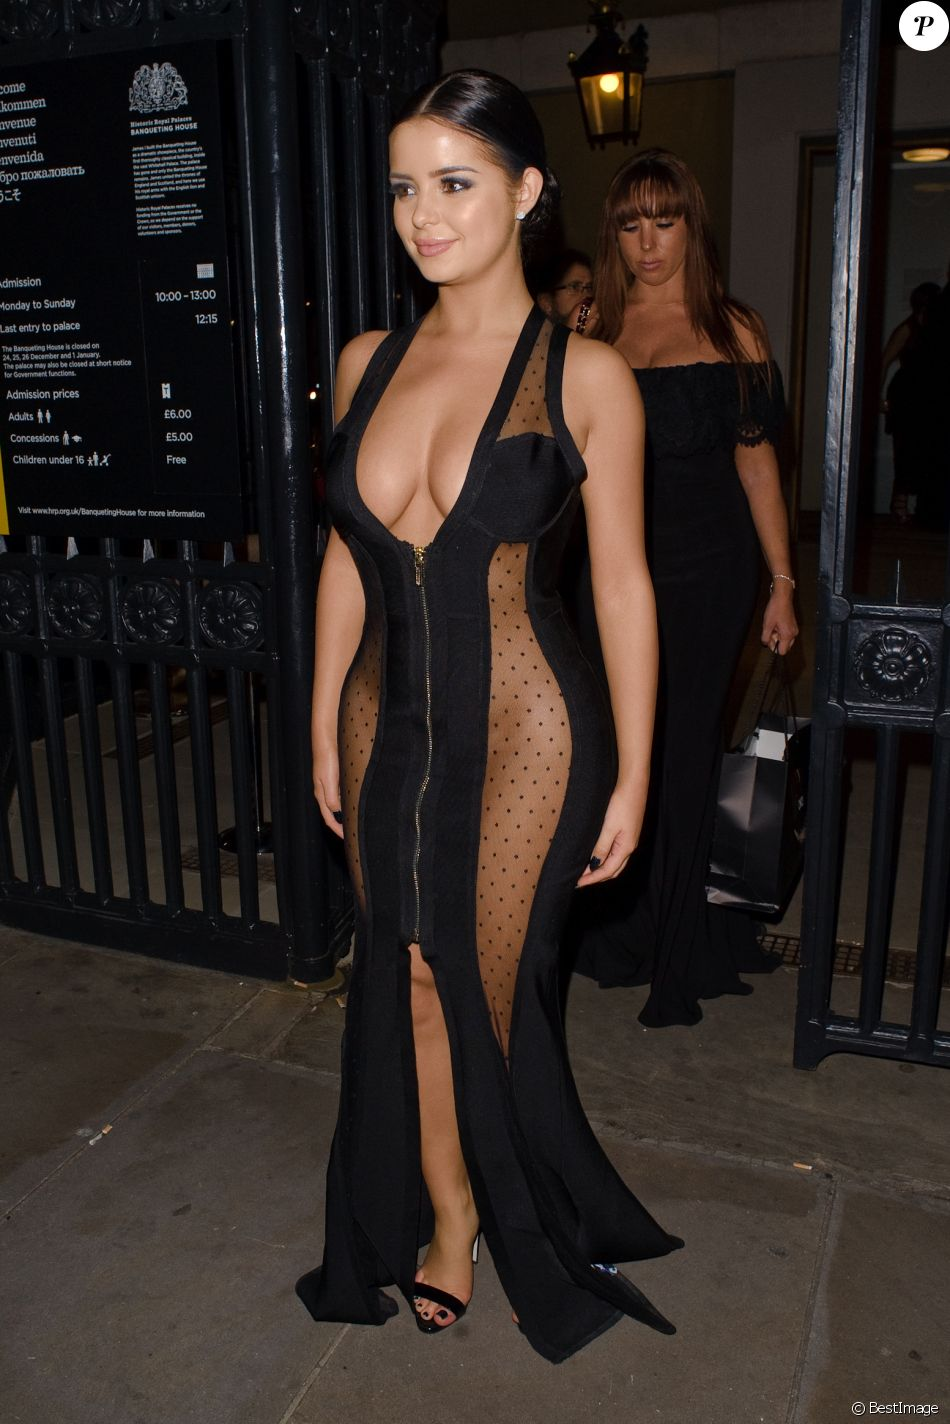 Photos Demi Rose naked (52 foto and video), Sexy, Paparazzi, Selfie, legs 2015